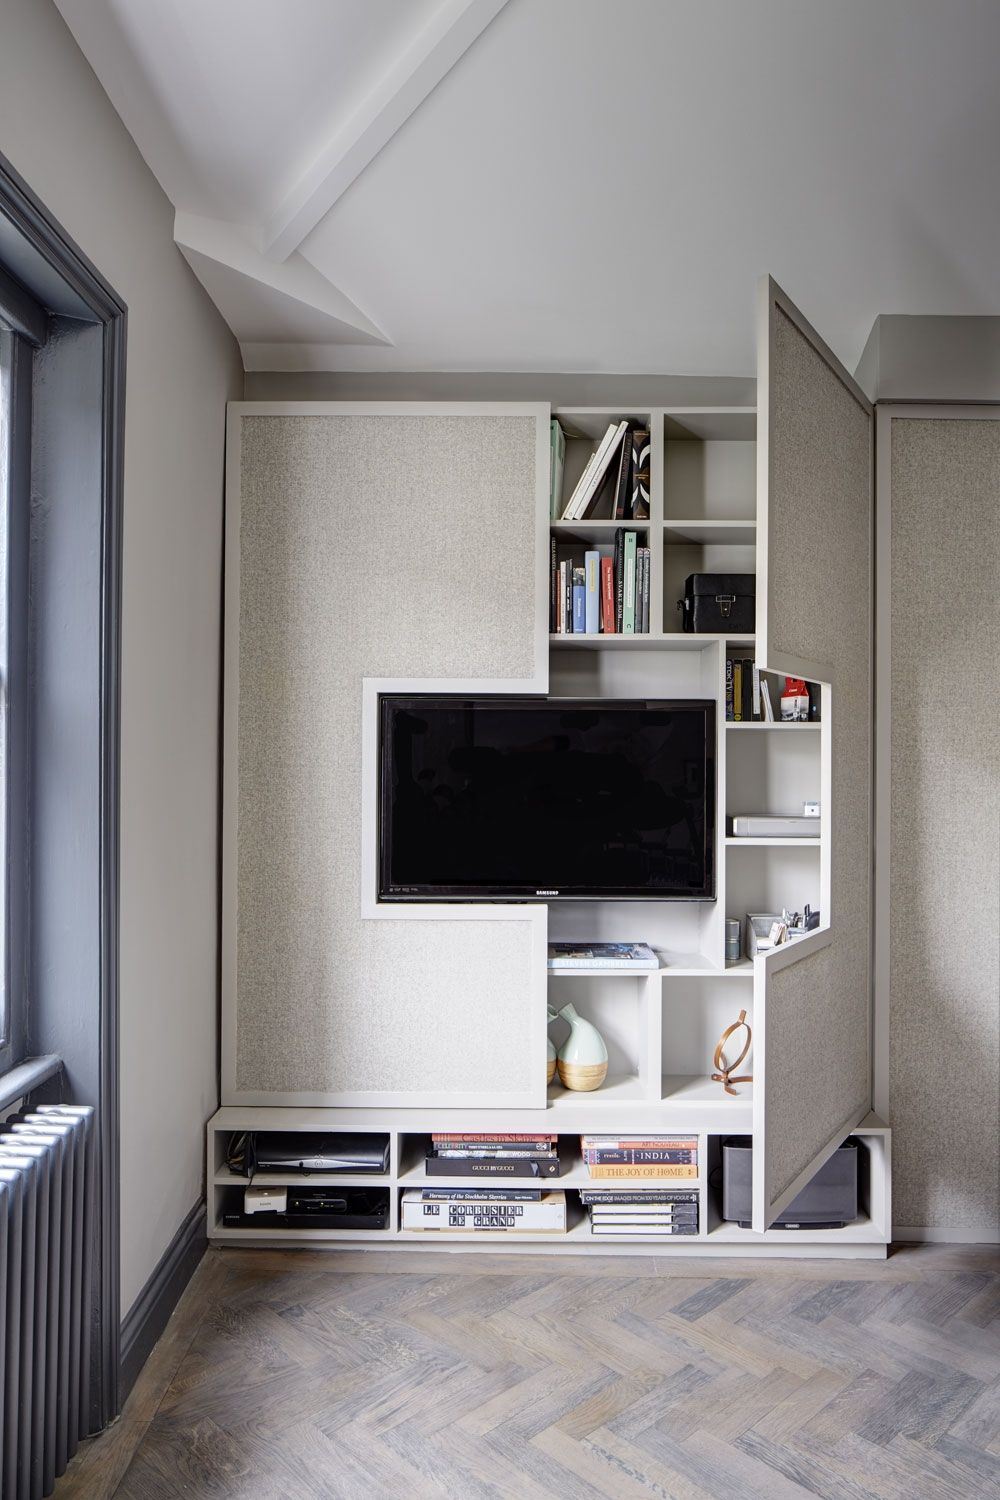 High Style, Low Budget In This 750 Square Foot English Flat